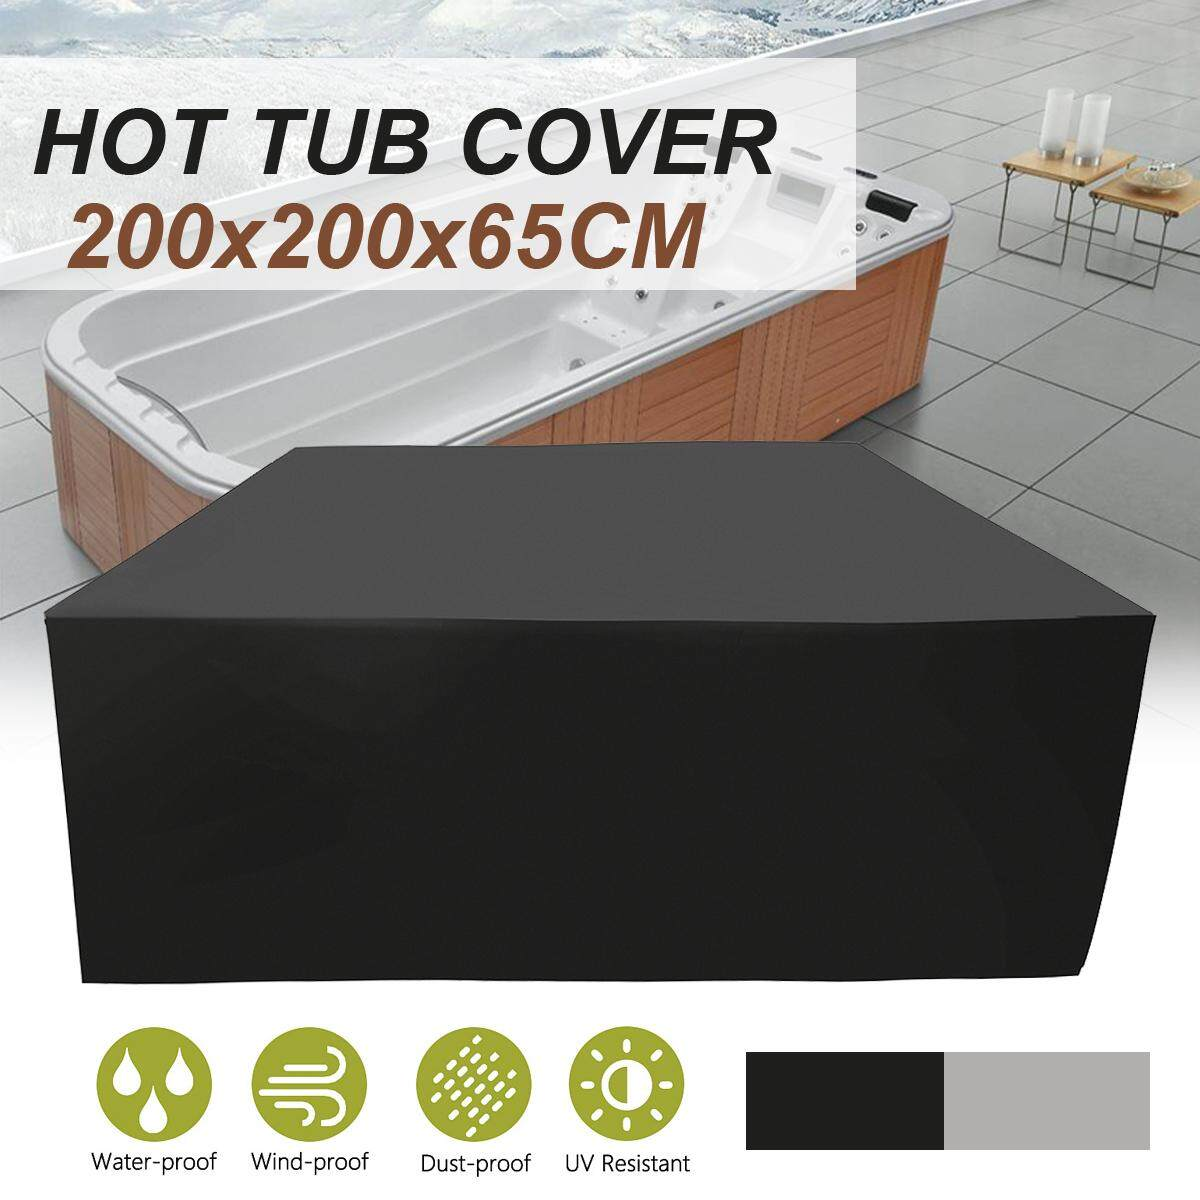 80x80x25 Outdoors Spa Hot Tub Cover Waterproof Furniture Garden Protector New